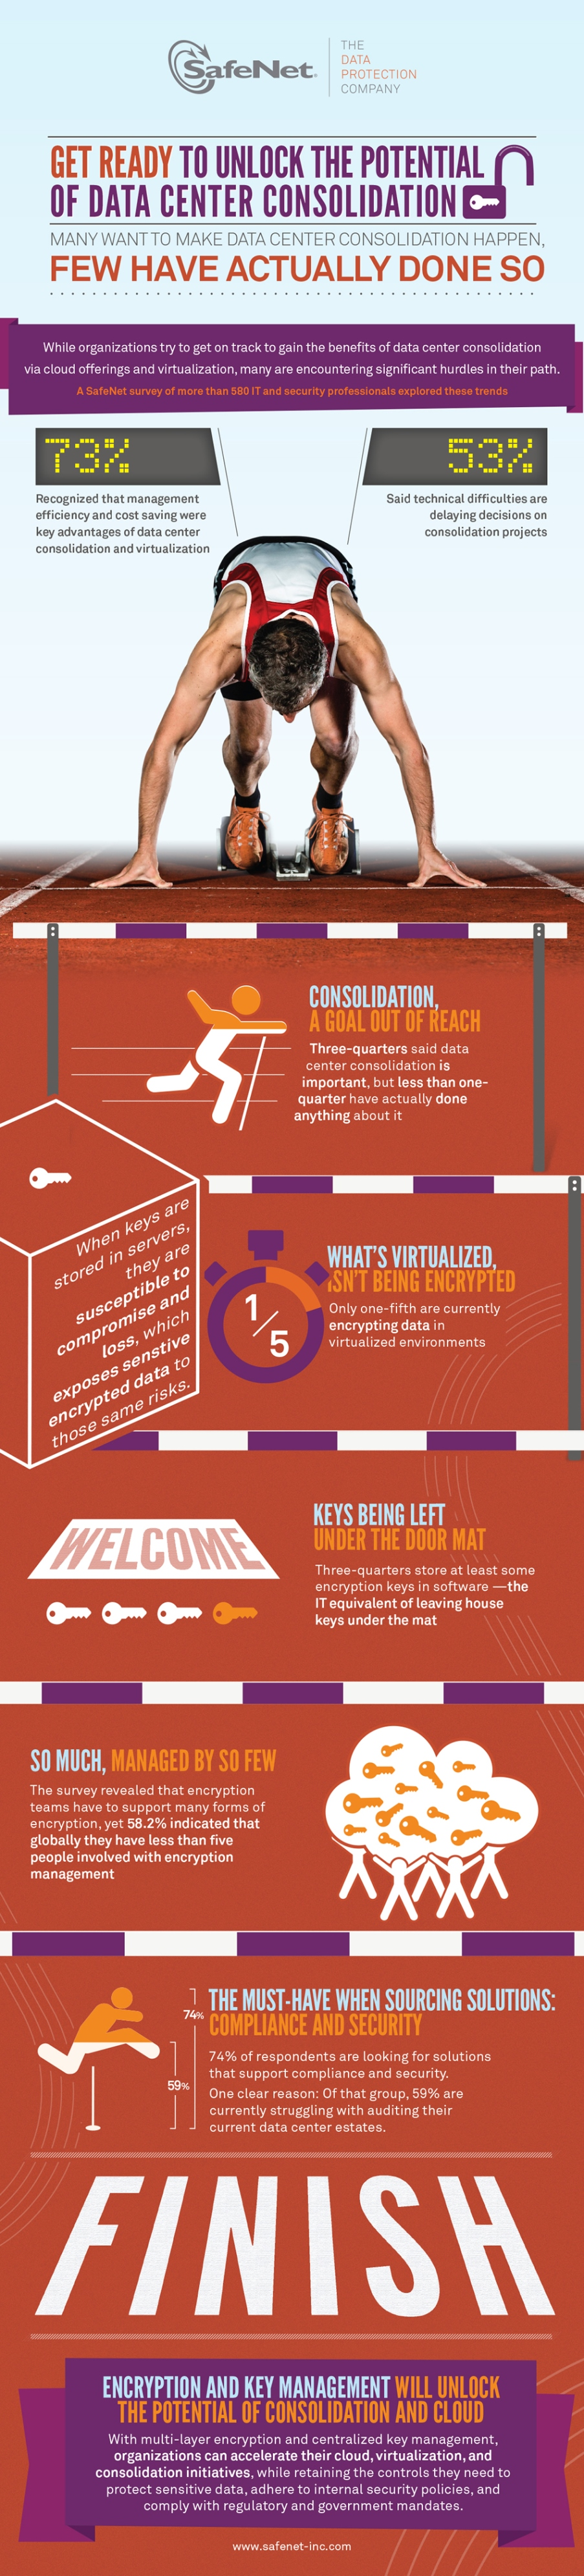 9 Information Tech Ideas Infographic Data Protection Data